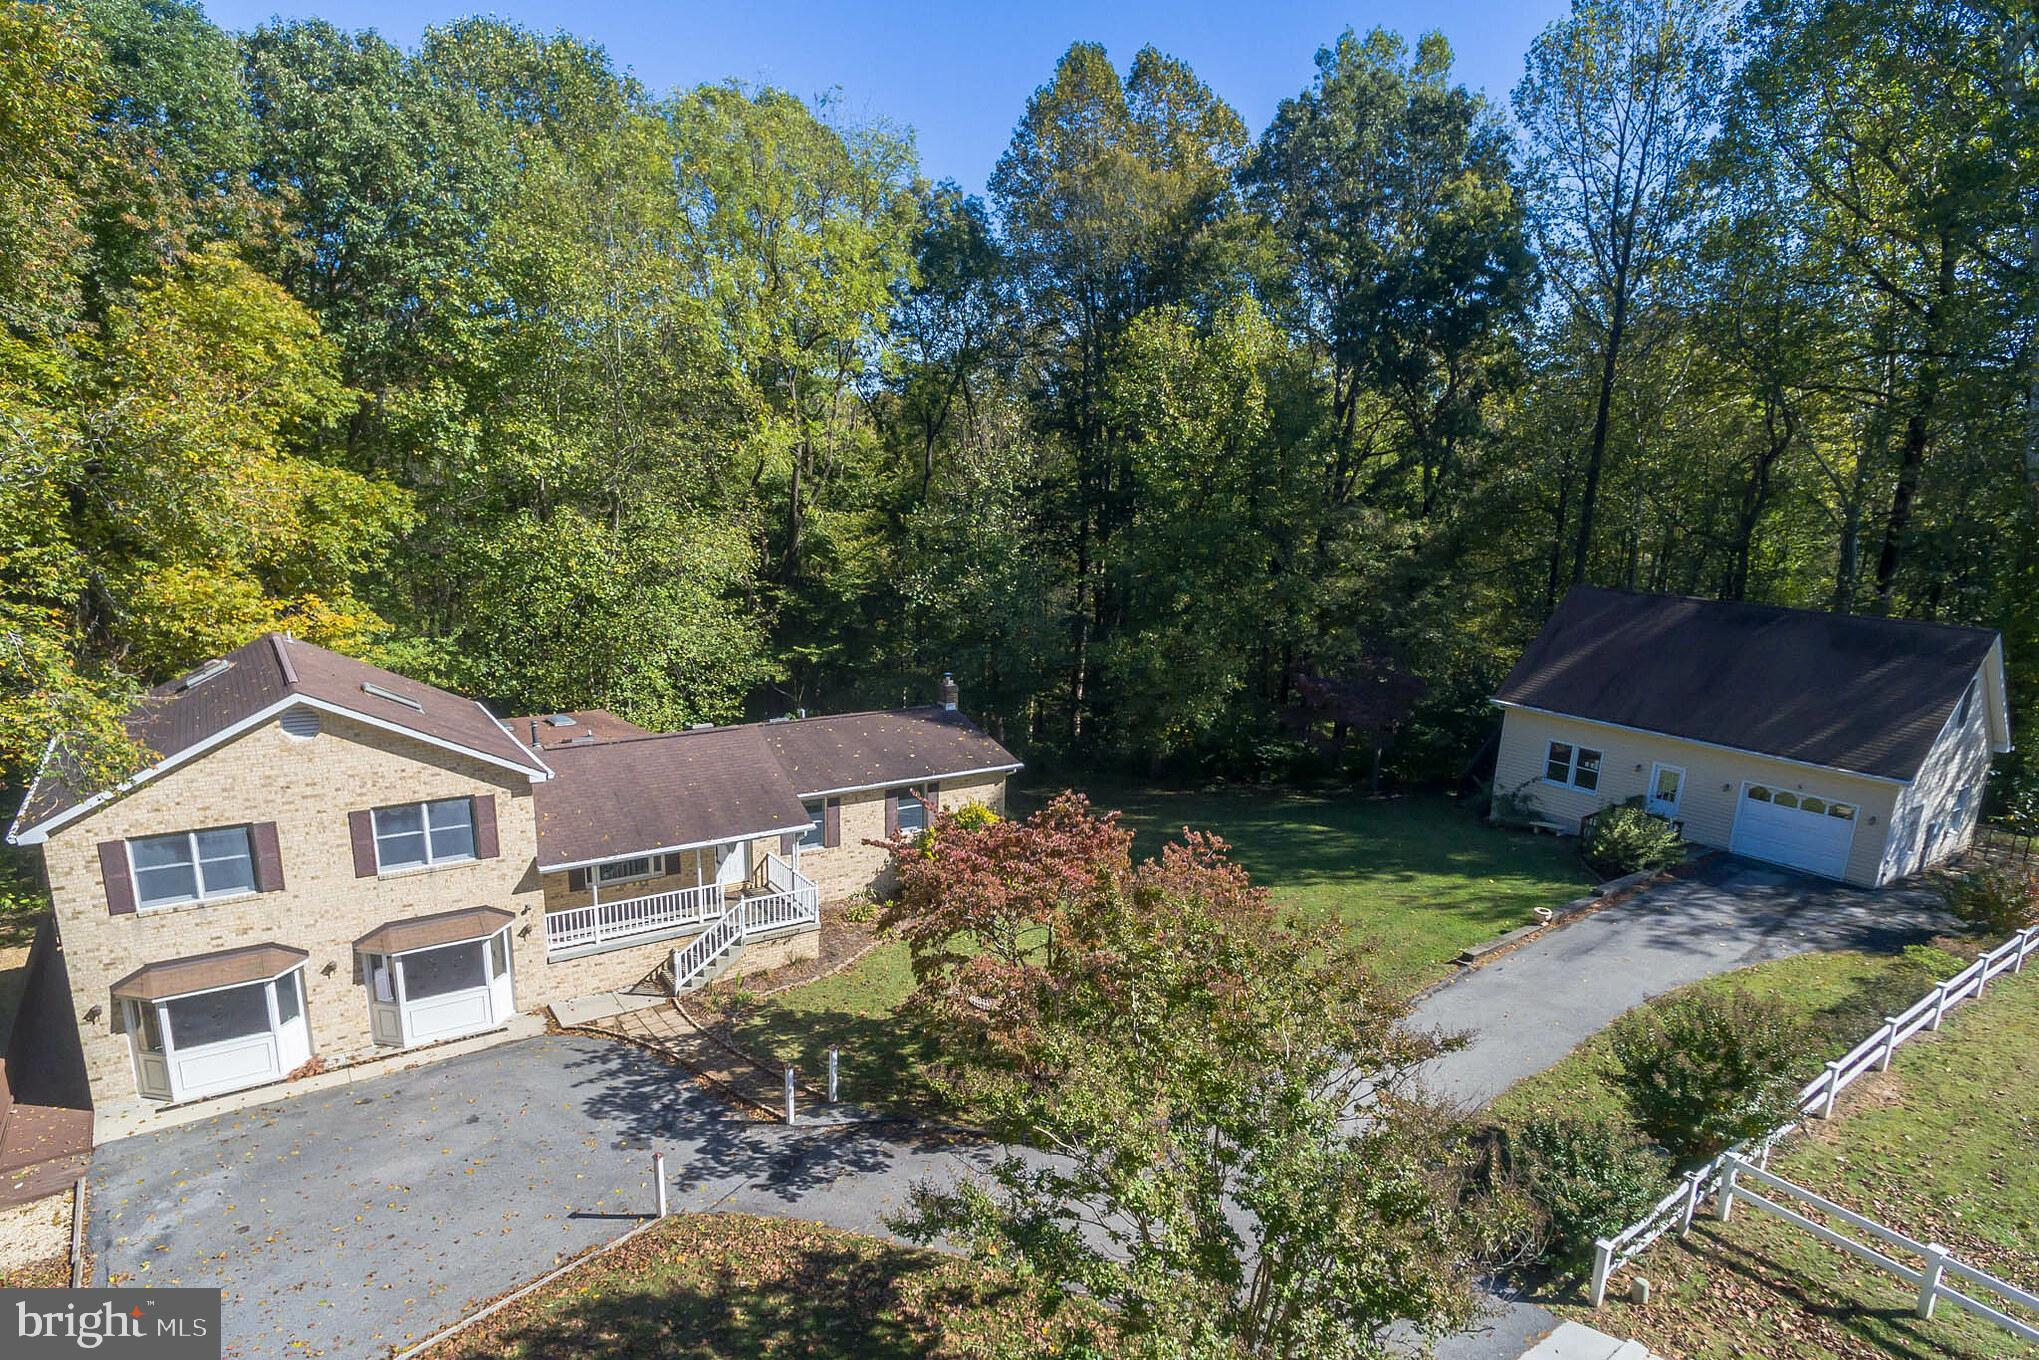 Have you been searching for a GREAT DEAL? THIS IS IT! Just reduced to an amazing $449,999!!! Located in Northern Most Calvert County in Owings on 3 private acres at the end of a quiet cul-de-sac. Look what you get for this low, low price: Over 3,100 sq. ft. of finished space, lovingly maintained and move-in ready. Blue ribbon schools, easy commute to downtown Washington, Annapolis and Joint Base Andrews. Seven skylights and Andersen windows bring the great outdoors inside. Updated kitchen features granite counters, new kitchen cabinets and custom pull-out pantry. Private master suite includes separate sitting room with hardwood floors, new carpet in bedroom and walk-in closet. Enormous Great Room (24~ x 23~) features bay windows and private entry to rear deck and ramp. The downstairs apartment provides privacy and independence for extended family, guests, or additional living space for any of your personal needs. Its kitchen features extra storage in cabinets, sink, microwave, full-sized refrigerator and washer/dryer. A private entrance opens to a screened-in porch. Outside you~ll find four porches overlooking three quiet acres of trees, birds and wildlife. Lot could accommodate an area suitable for animals. And as if that wasn~t enough, at the other end of your driveway you~ll find the ultimate workshop (47~ x 35~), detached office outside of the home, and a 1 car garage. Fully finished with ten-foot ceilings, reinforced floor, electricity, heat and air, it includes a single car garage bay, attached lean-to and full-sized, floored second story. Most homes in this location with this square footage and this acreage, will be priced way higher! Come tour this one-of-a-kind home for yourself and fall in love.